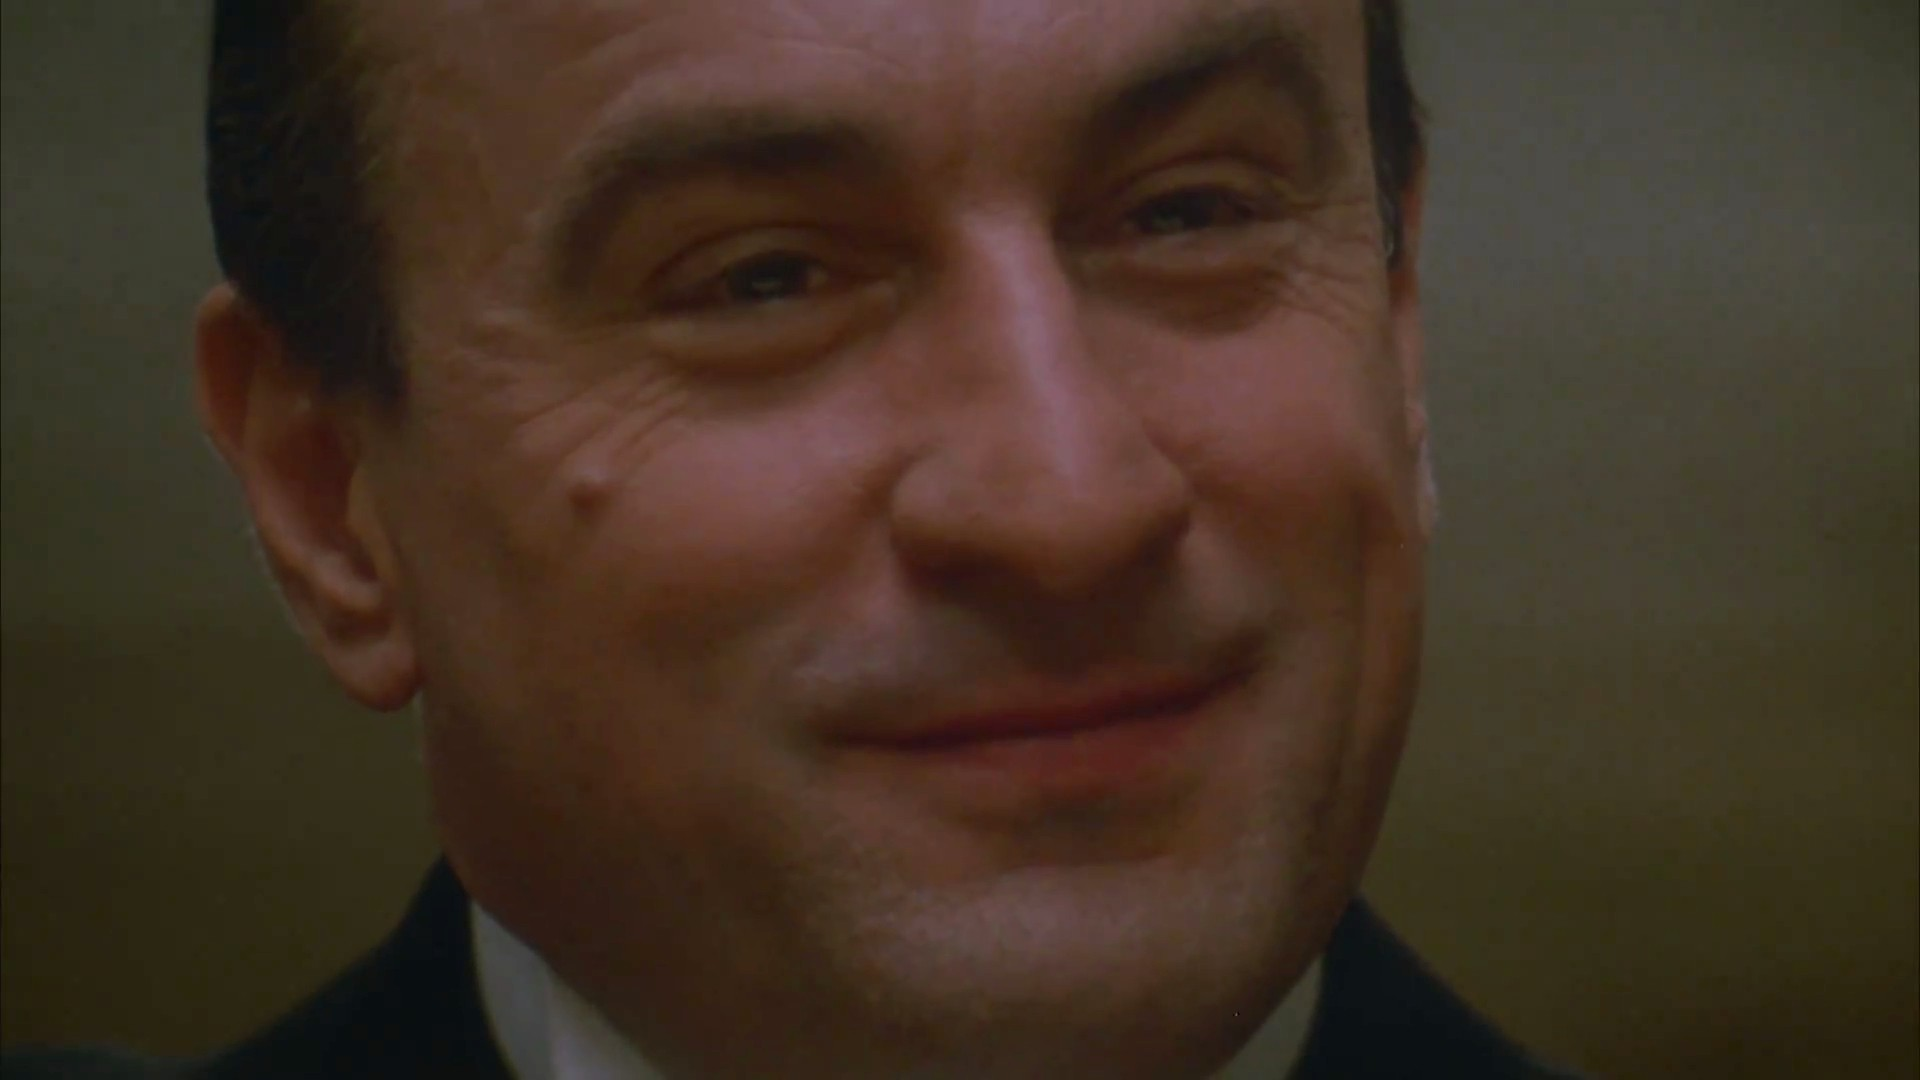 """Photo of Robert De Niro, portraying Al Capone from """"The Untouchables""""(1987). Source: The Official Trailer"""